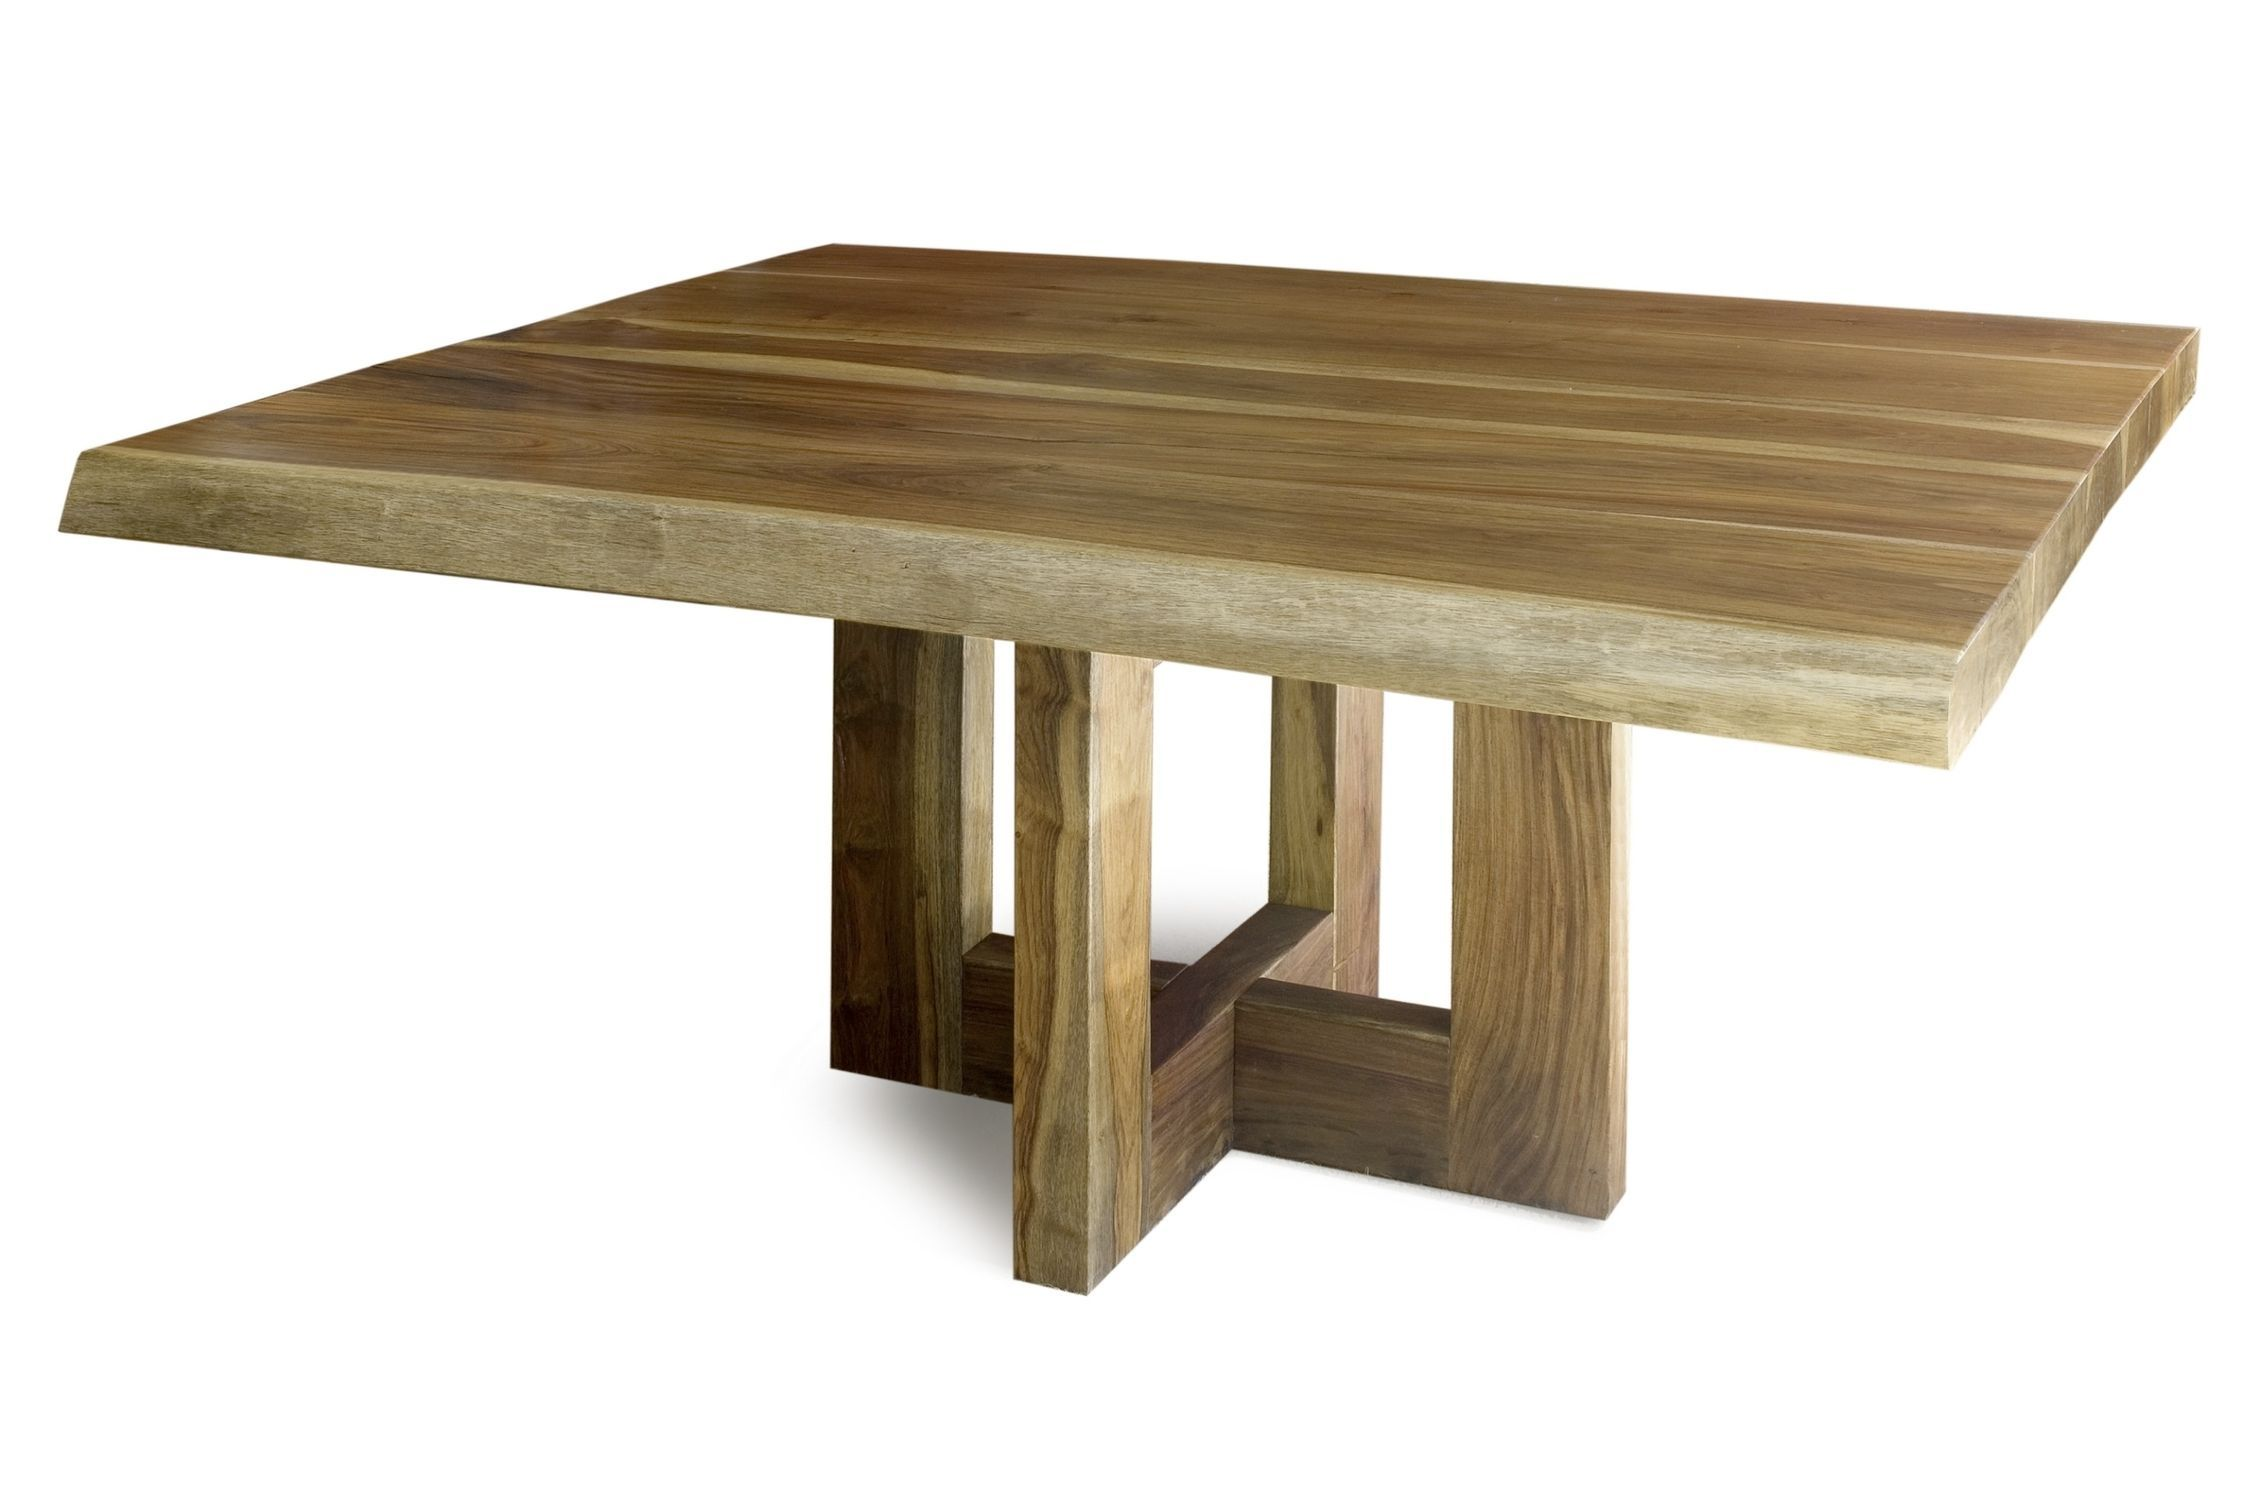 modern wooden coffee table designs photo - 9